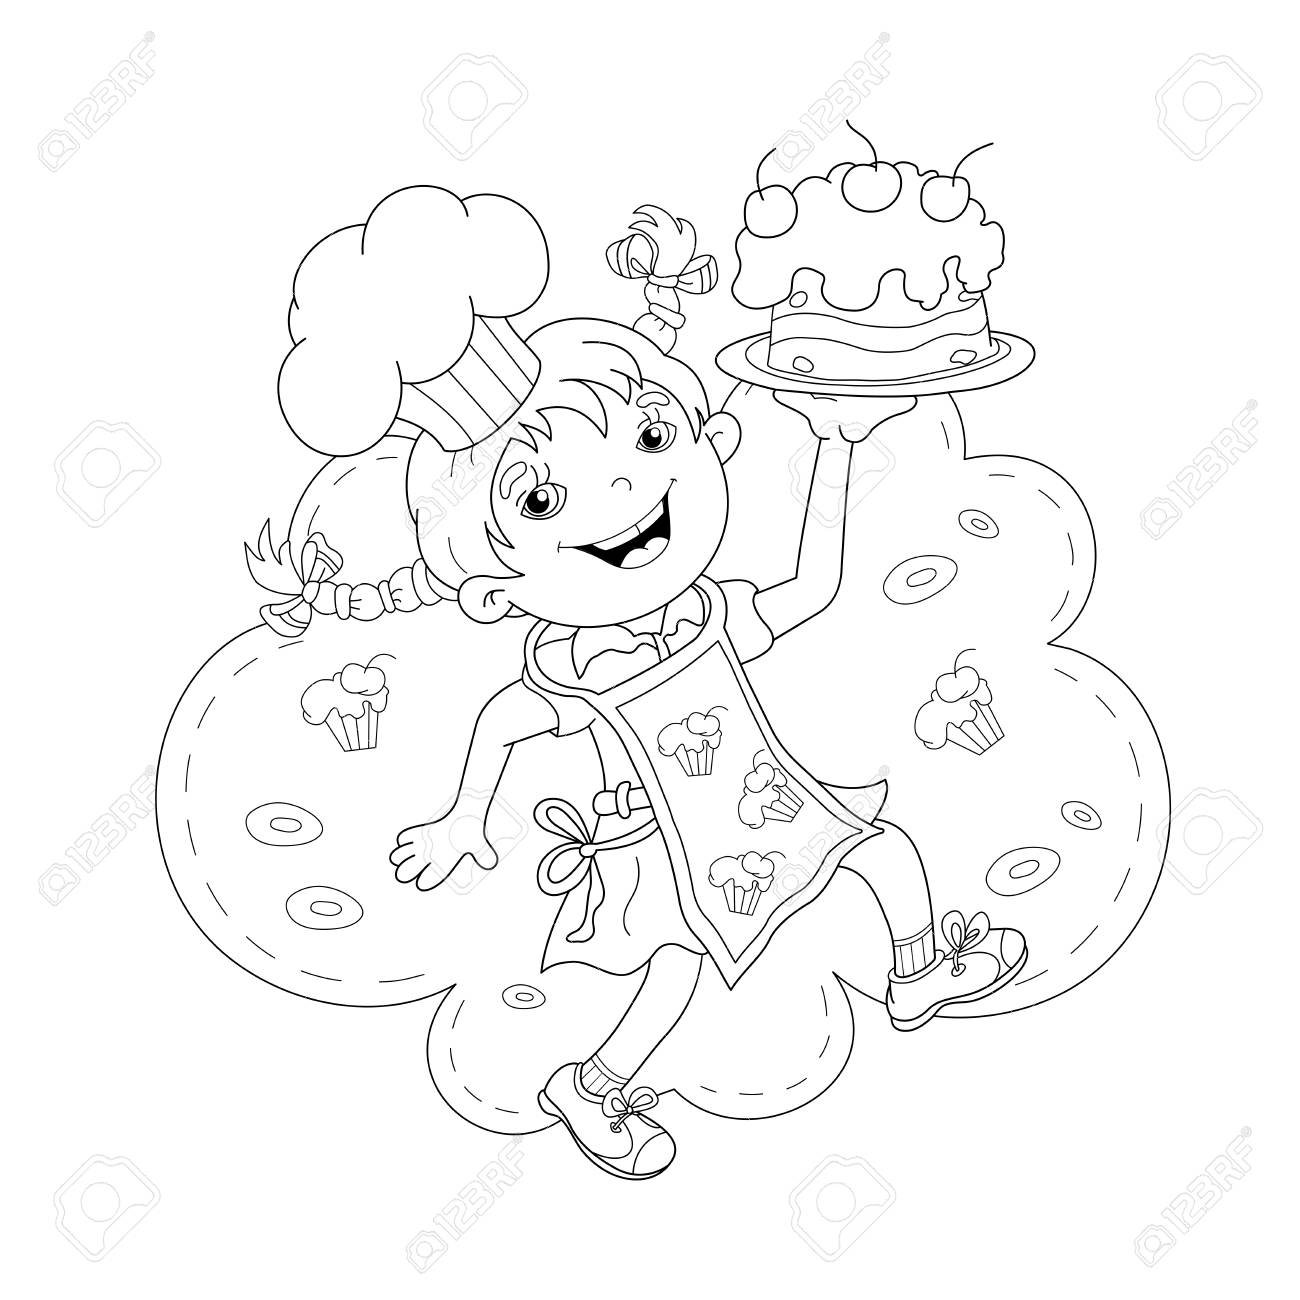 Coloring Page Outline Of Cartoon Girl Chef With Cake. Coloring ...